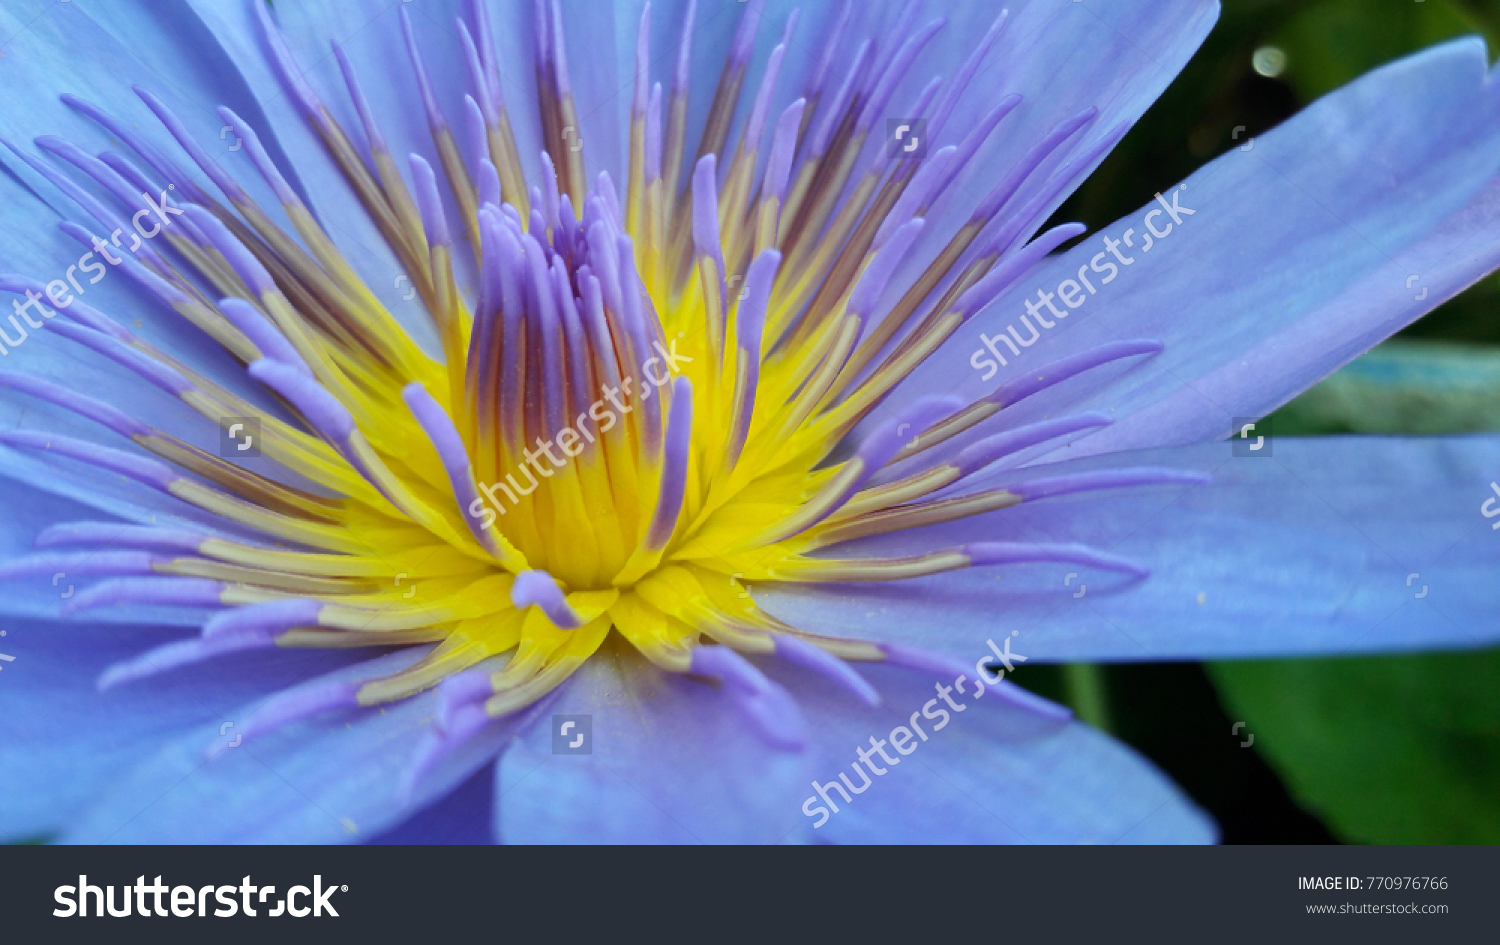 Lotus The Inside Of A Flower Comprising Both The Stamen And The